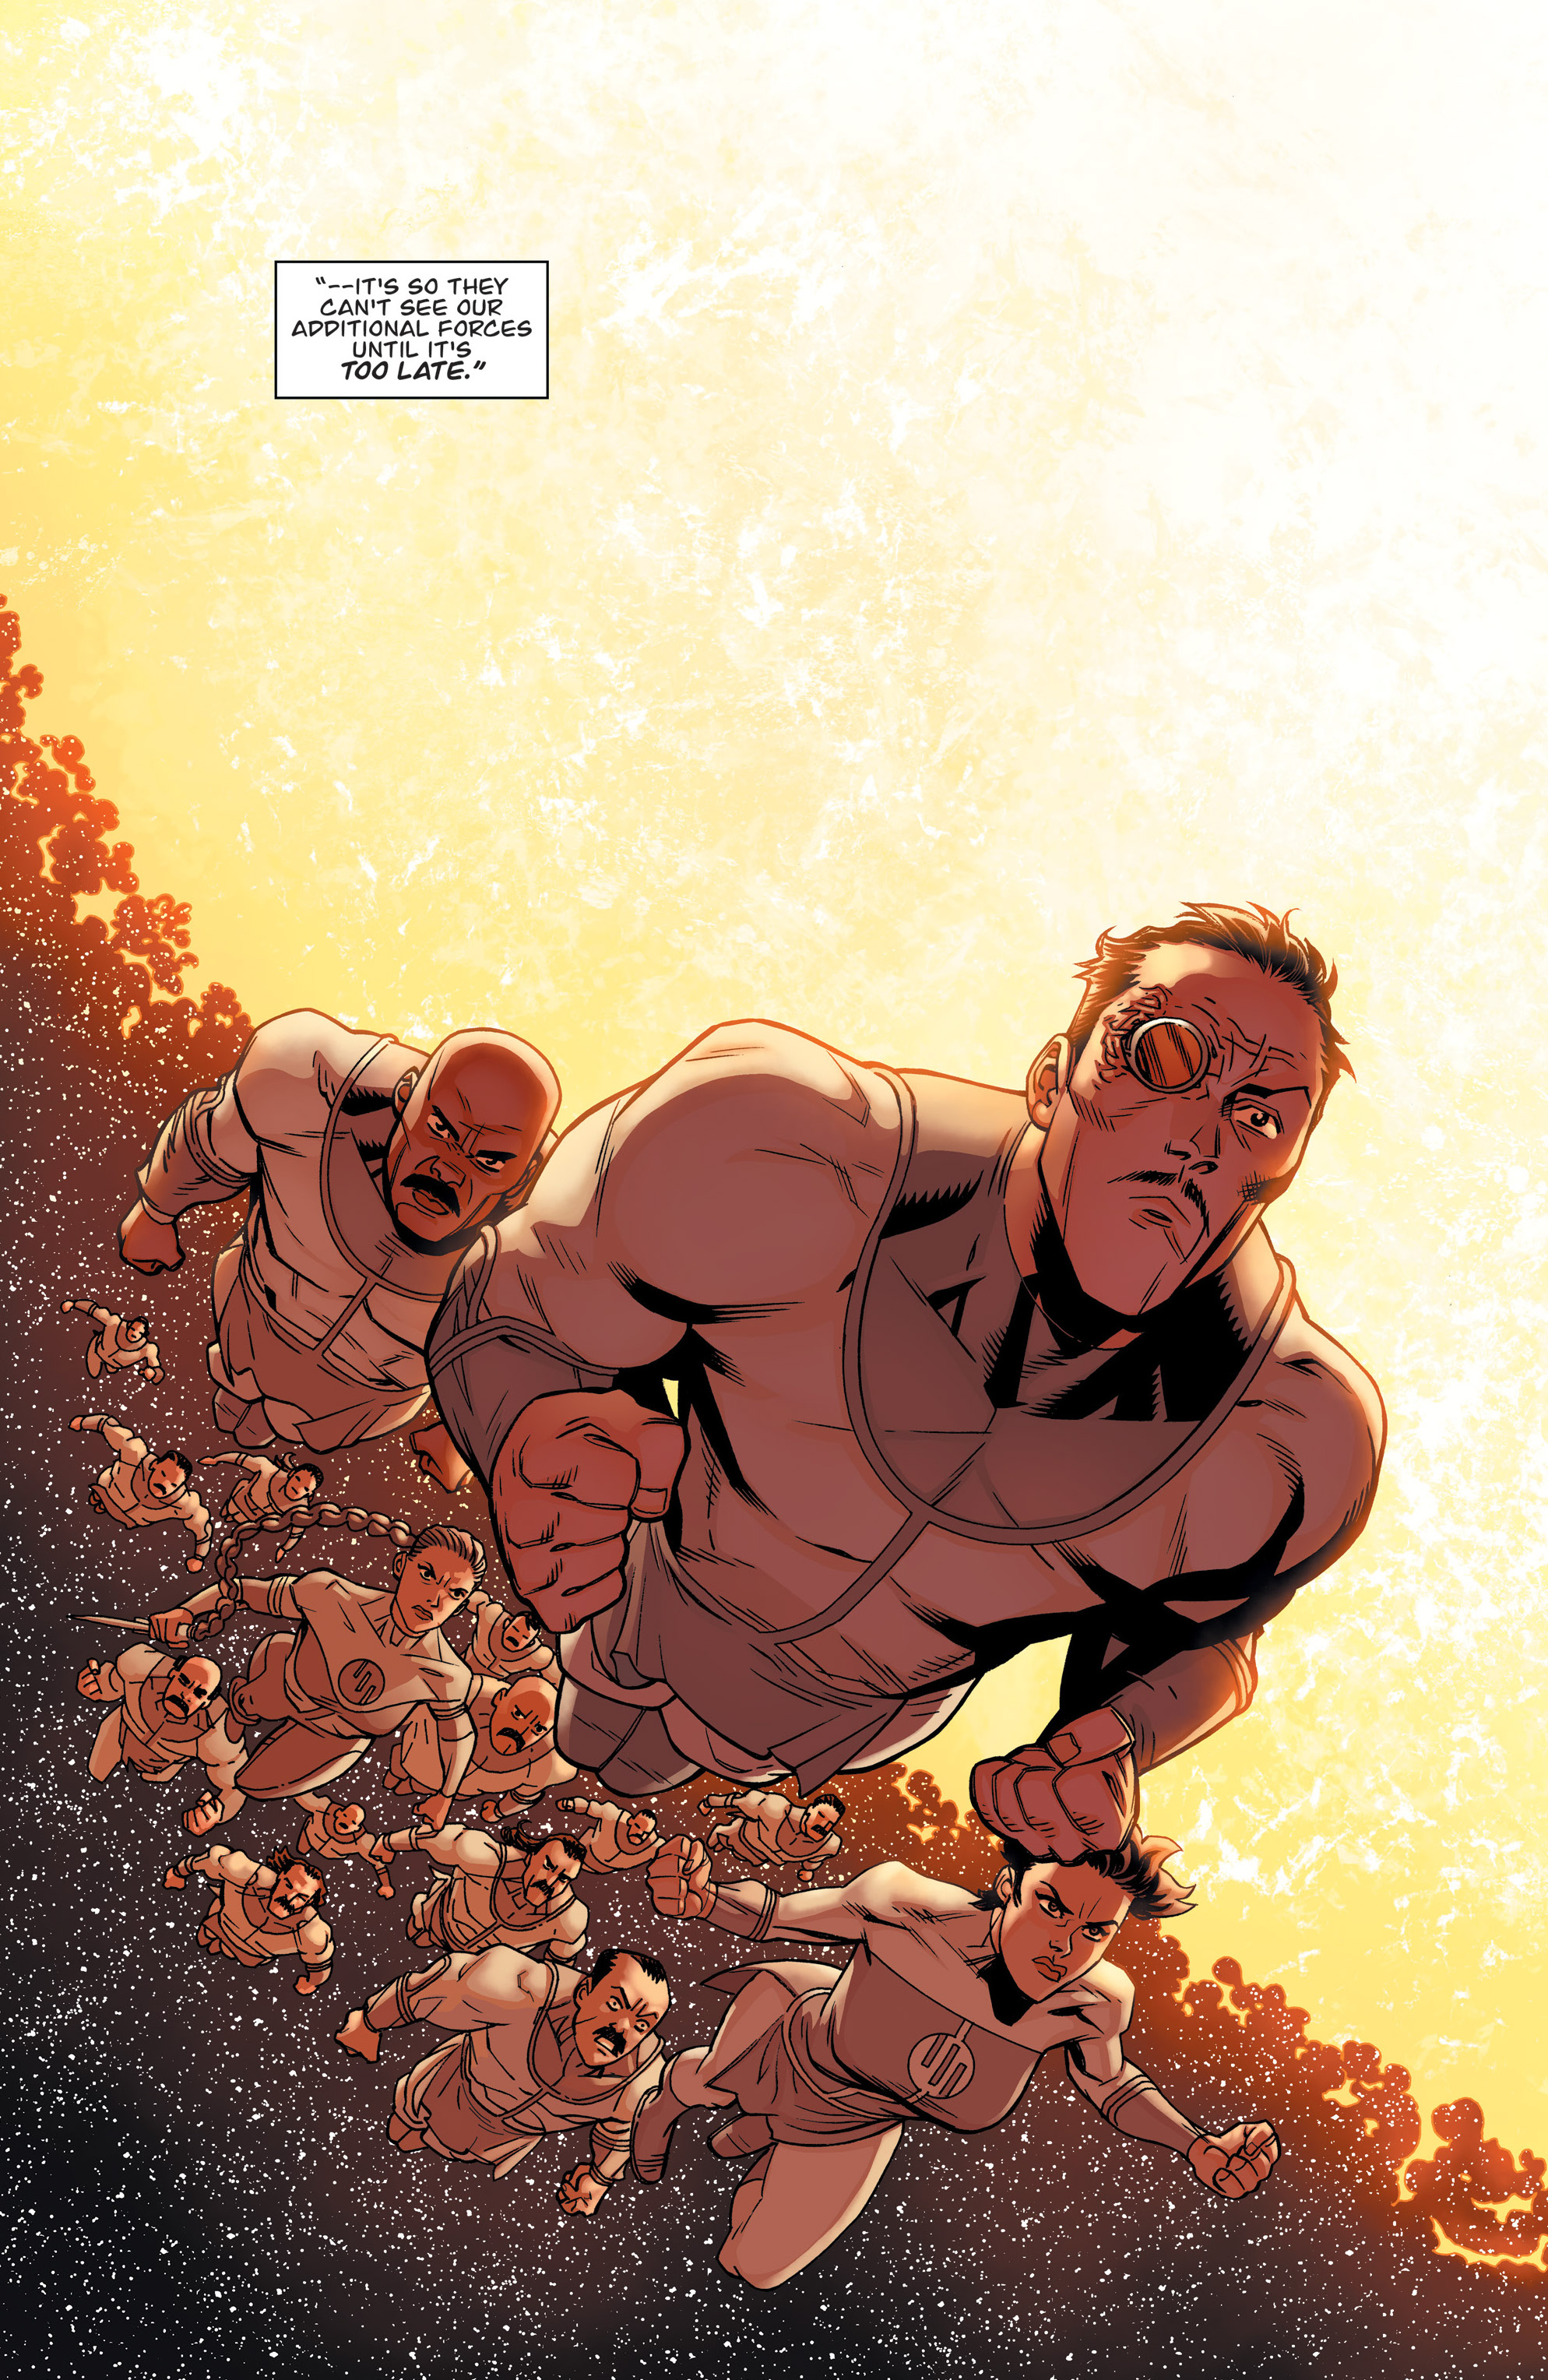 Read online Invincible comic -  Issue #137 - 17